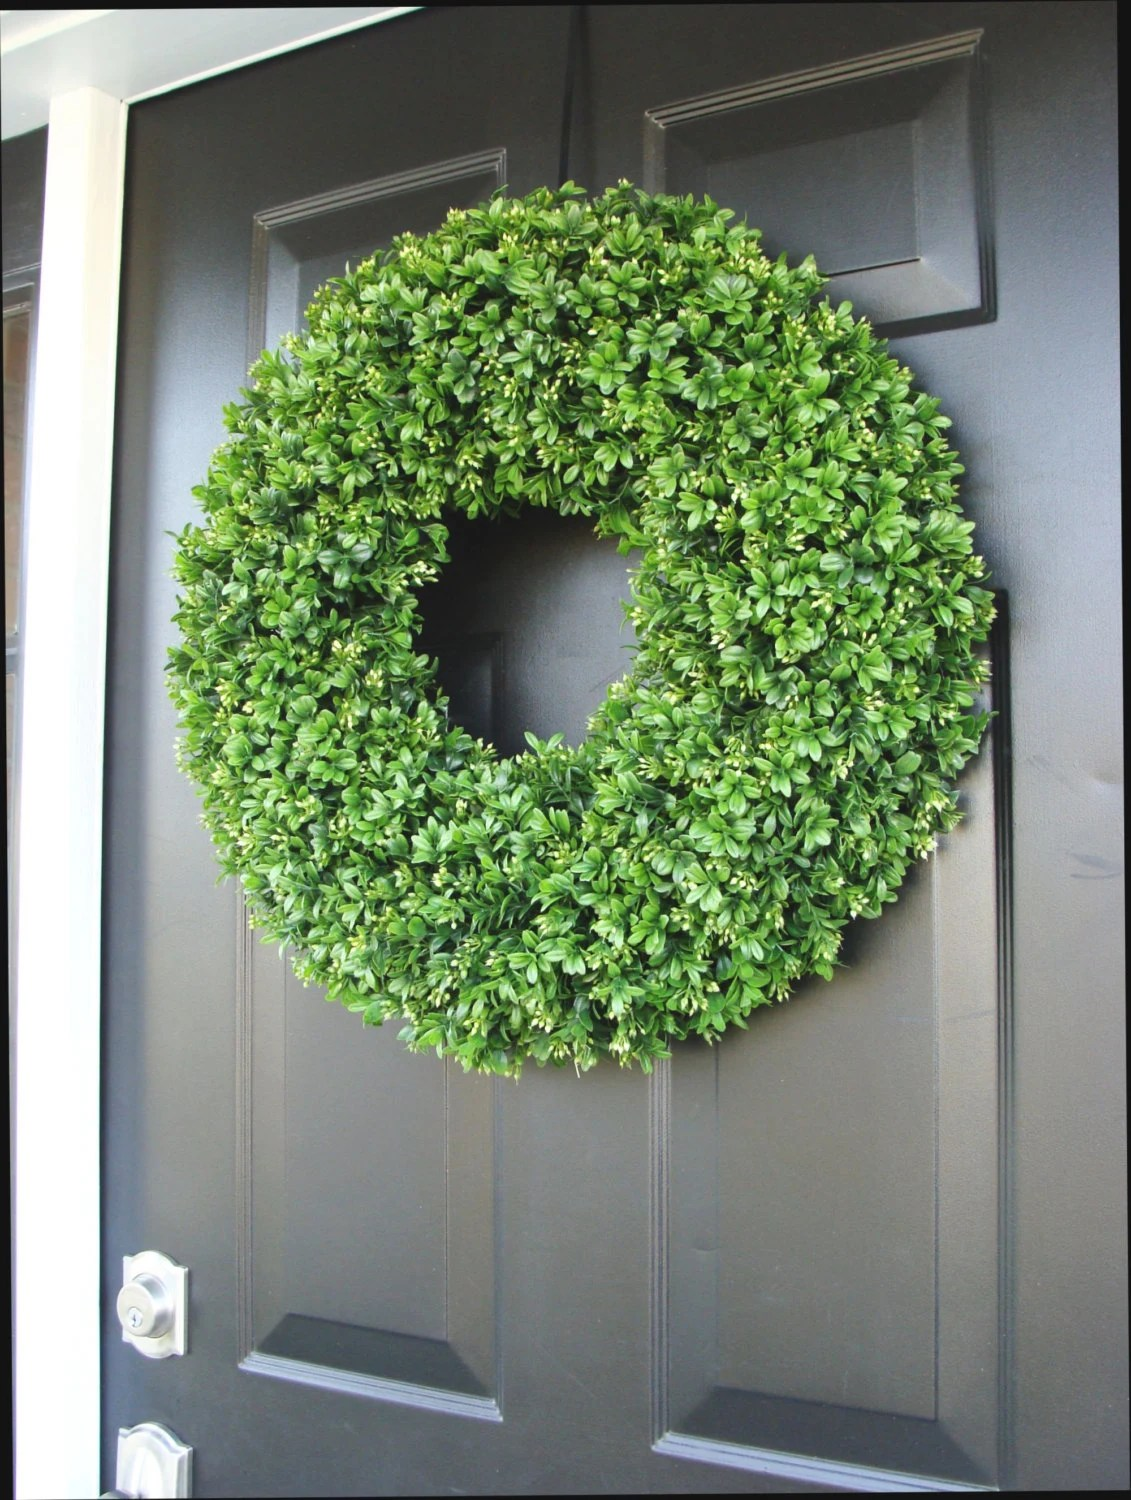 Pleasing Year Round Front Door Faux Boxwood Outdoor Home Room Wall Decor Year Round Front Door Faux Boxwood Outdoor Front Door Decoration Ideas Summer Front Door Decor Summer curbed Front Door Decor